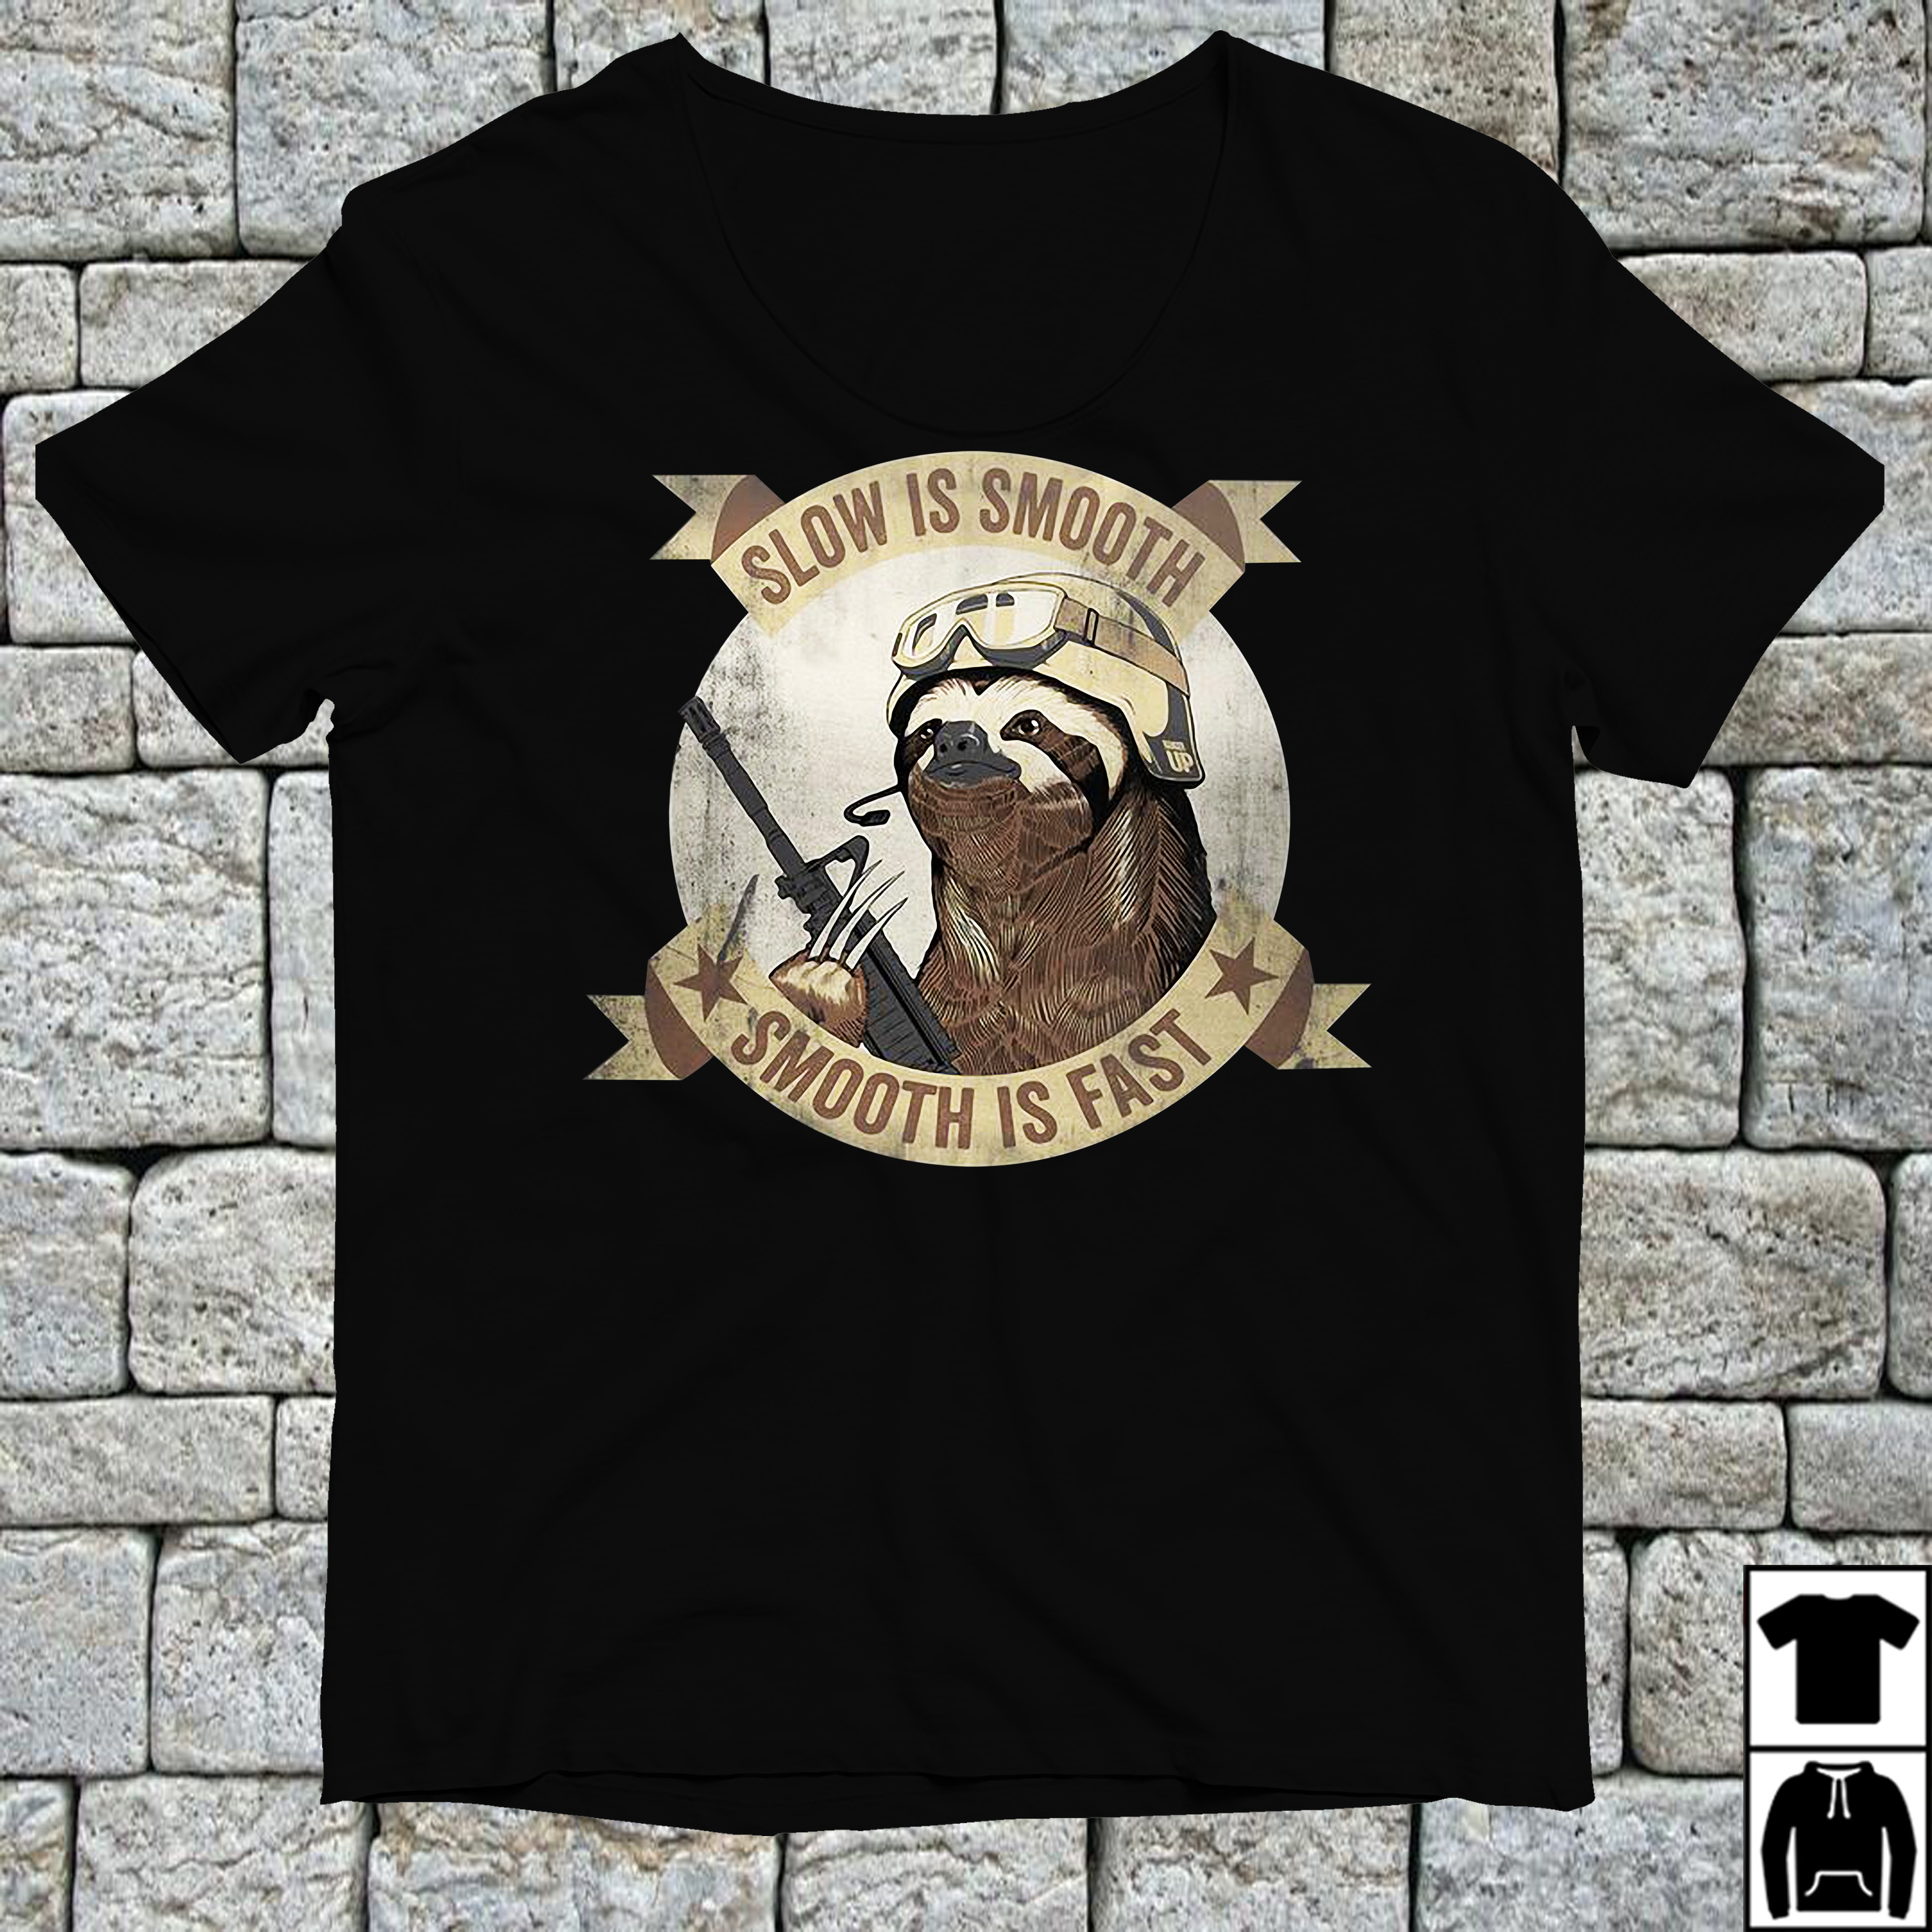 Sloth Slow is smooth smooth is fast shirt